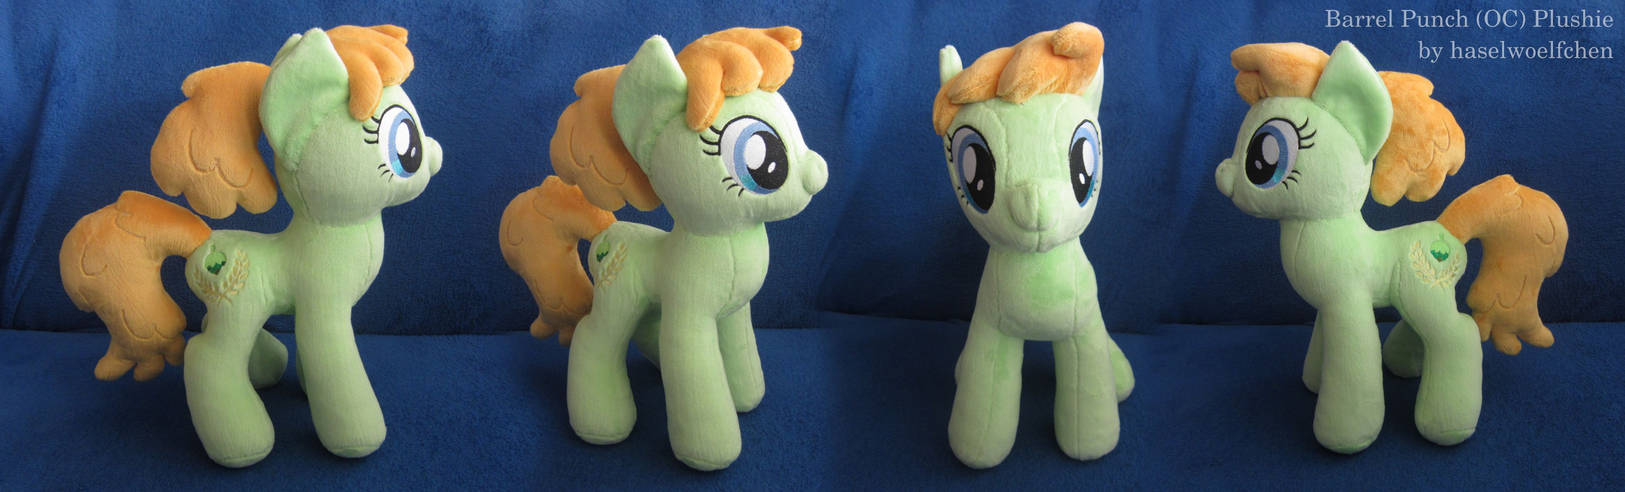 Barrel Punch OC Plushie by haselwoelfchen